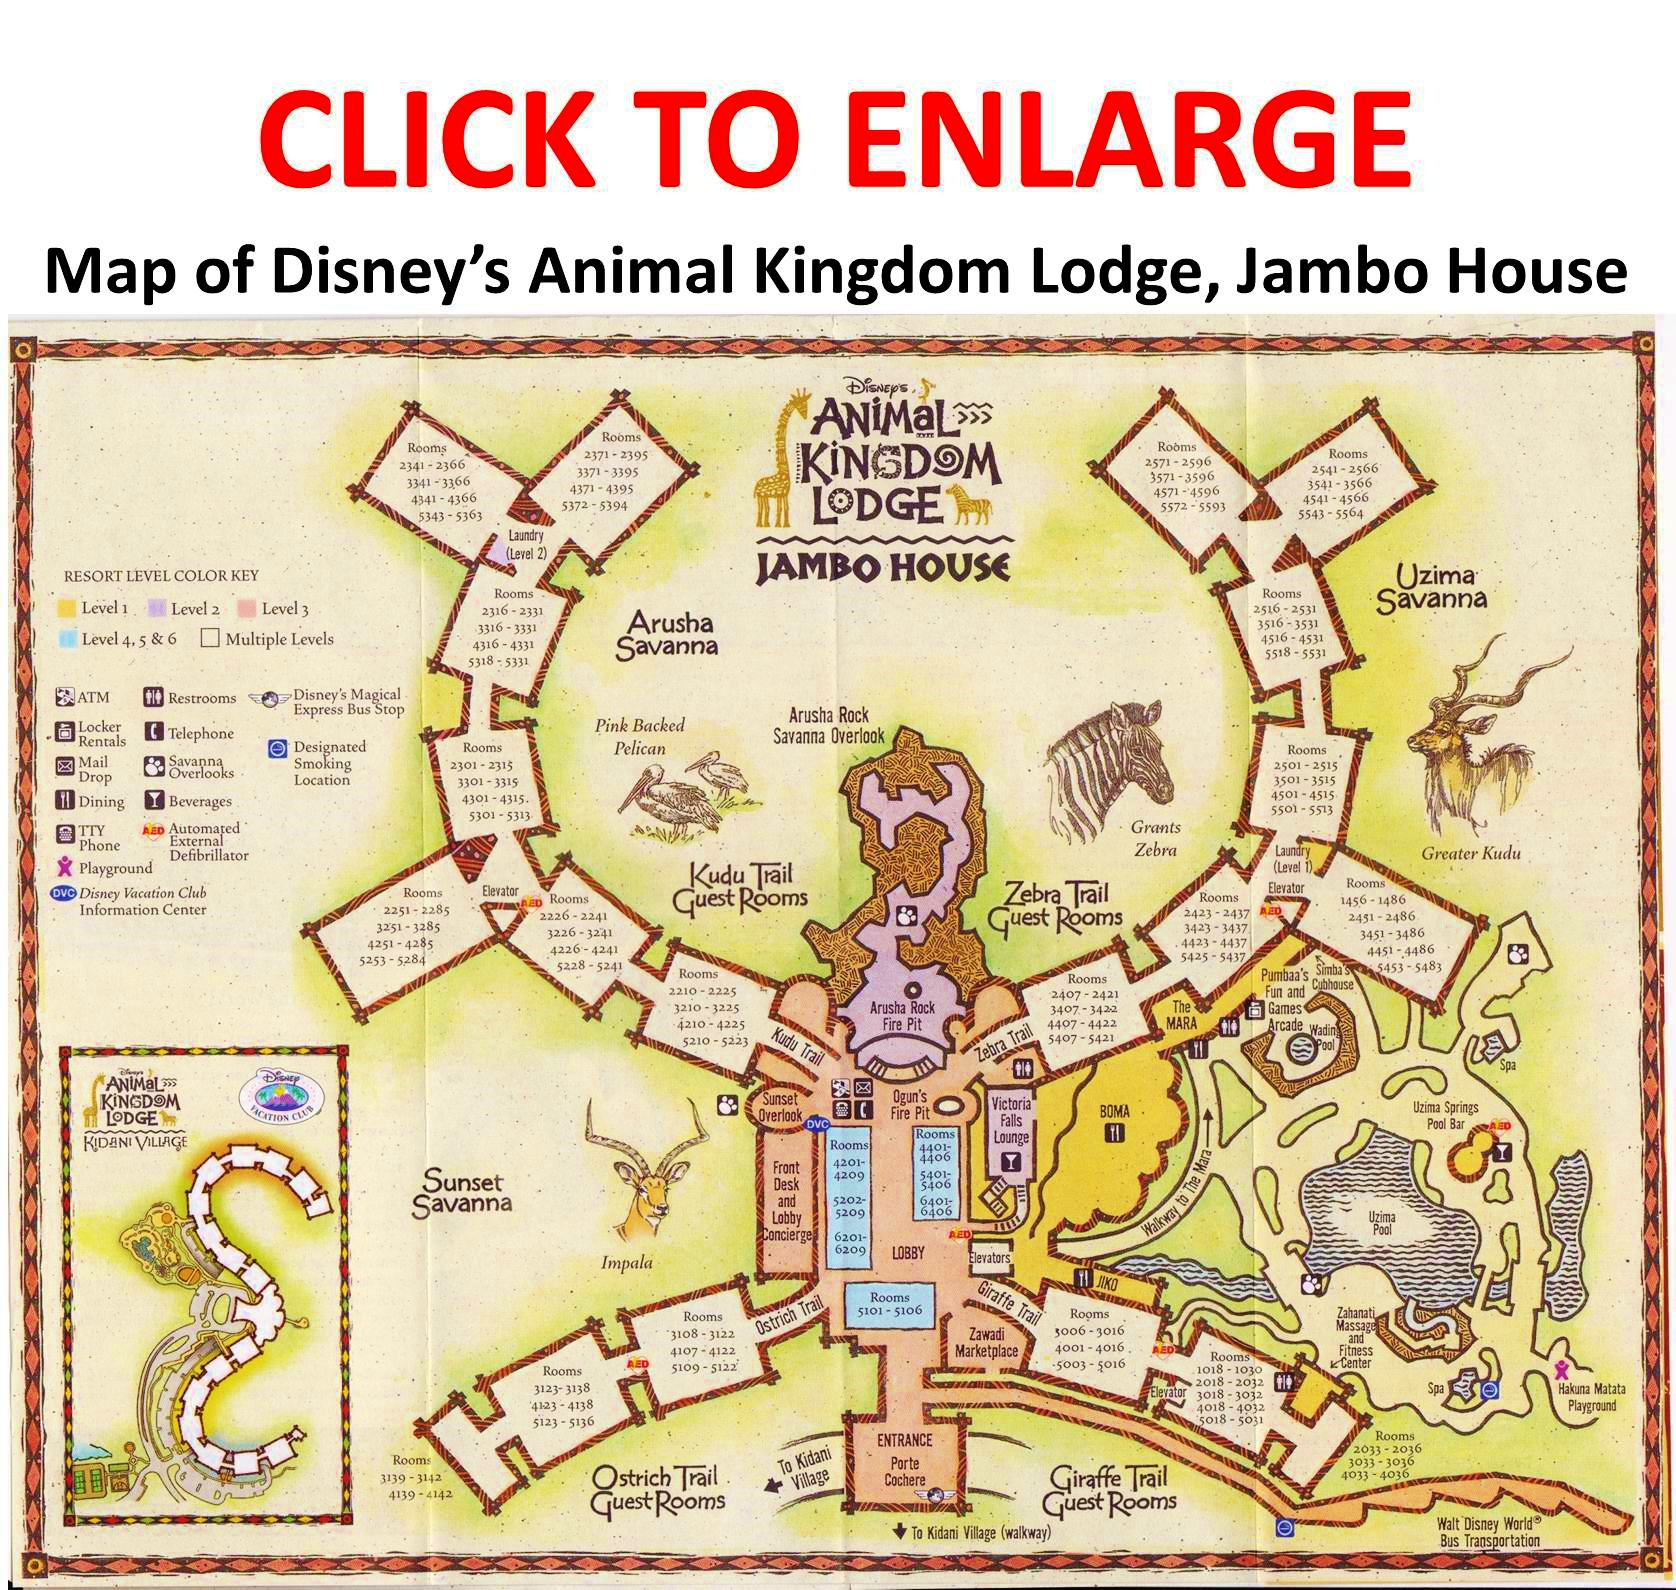 Map of Jambo House